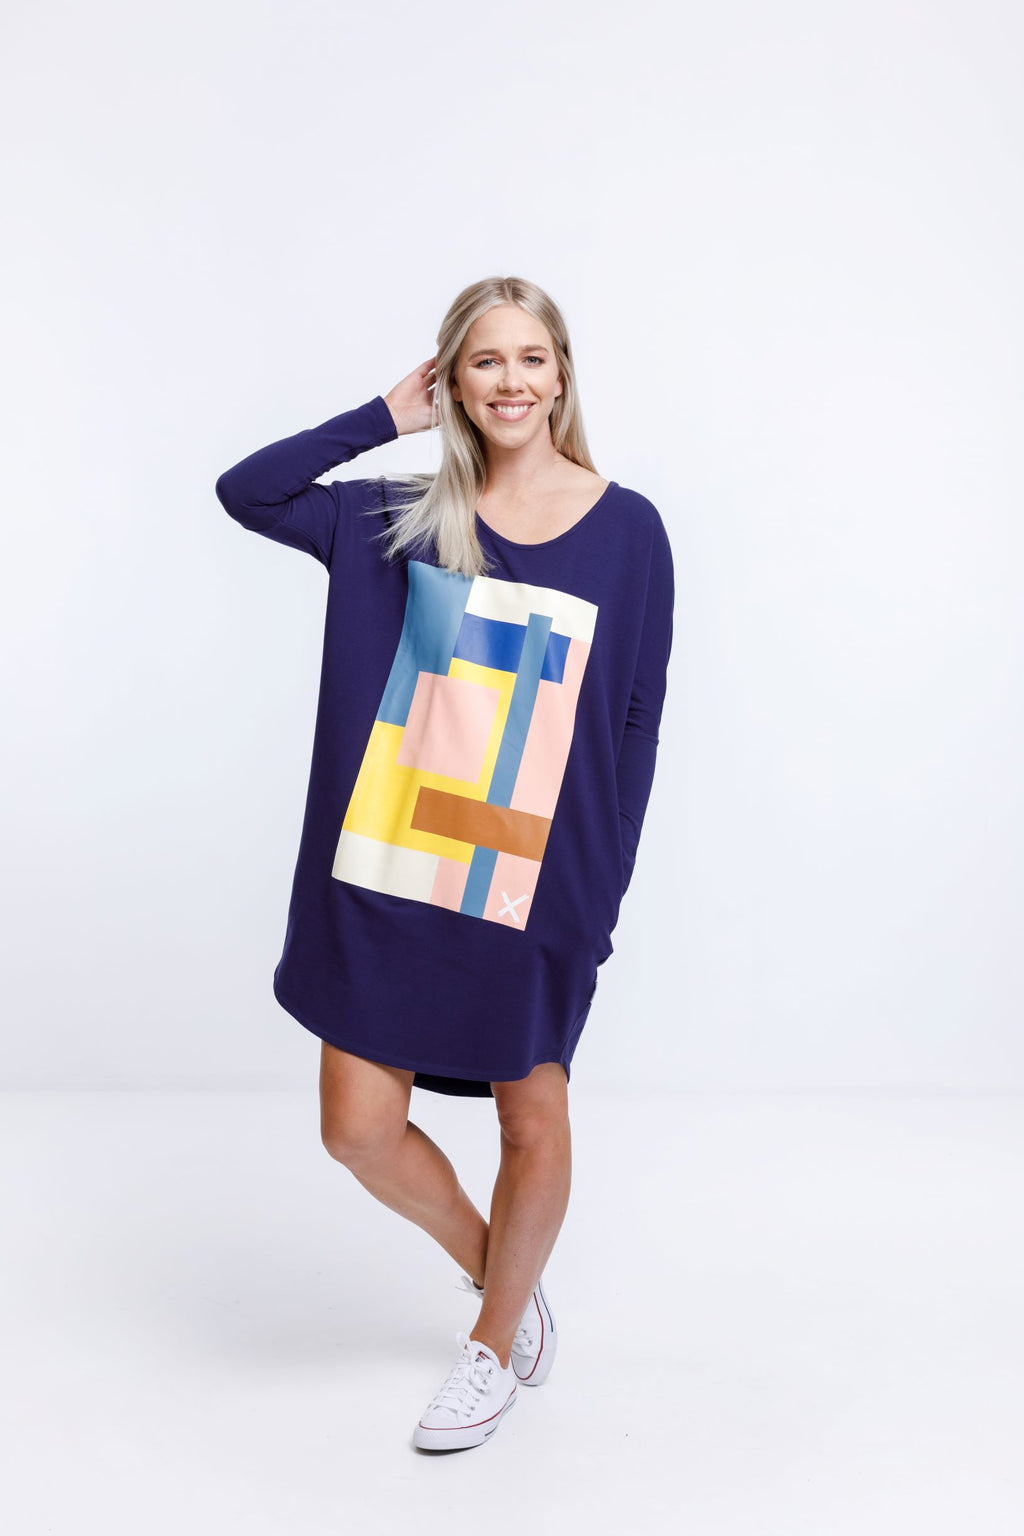 BATWING DRESS - Evening Blue with Abstract Print